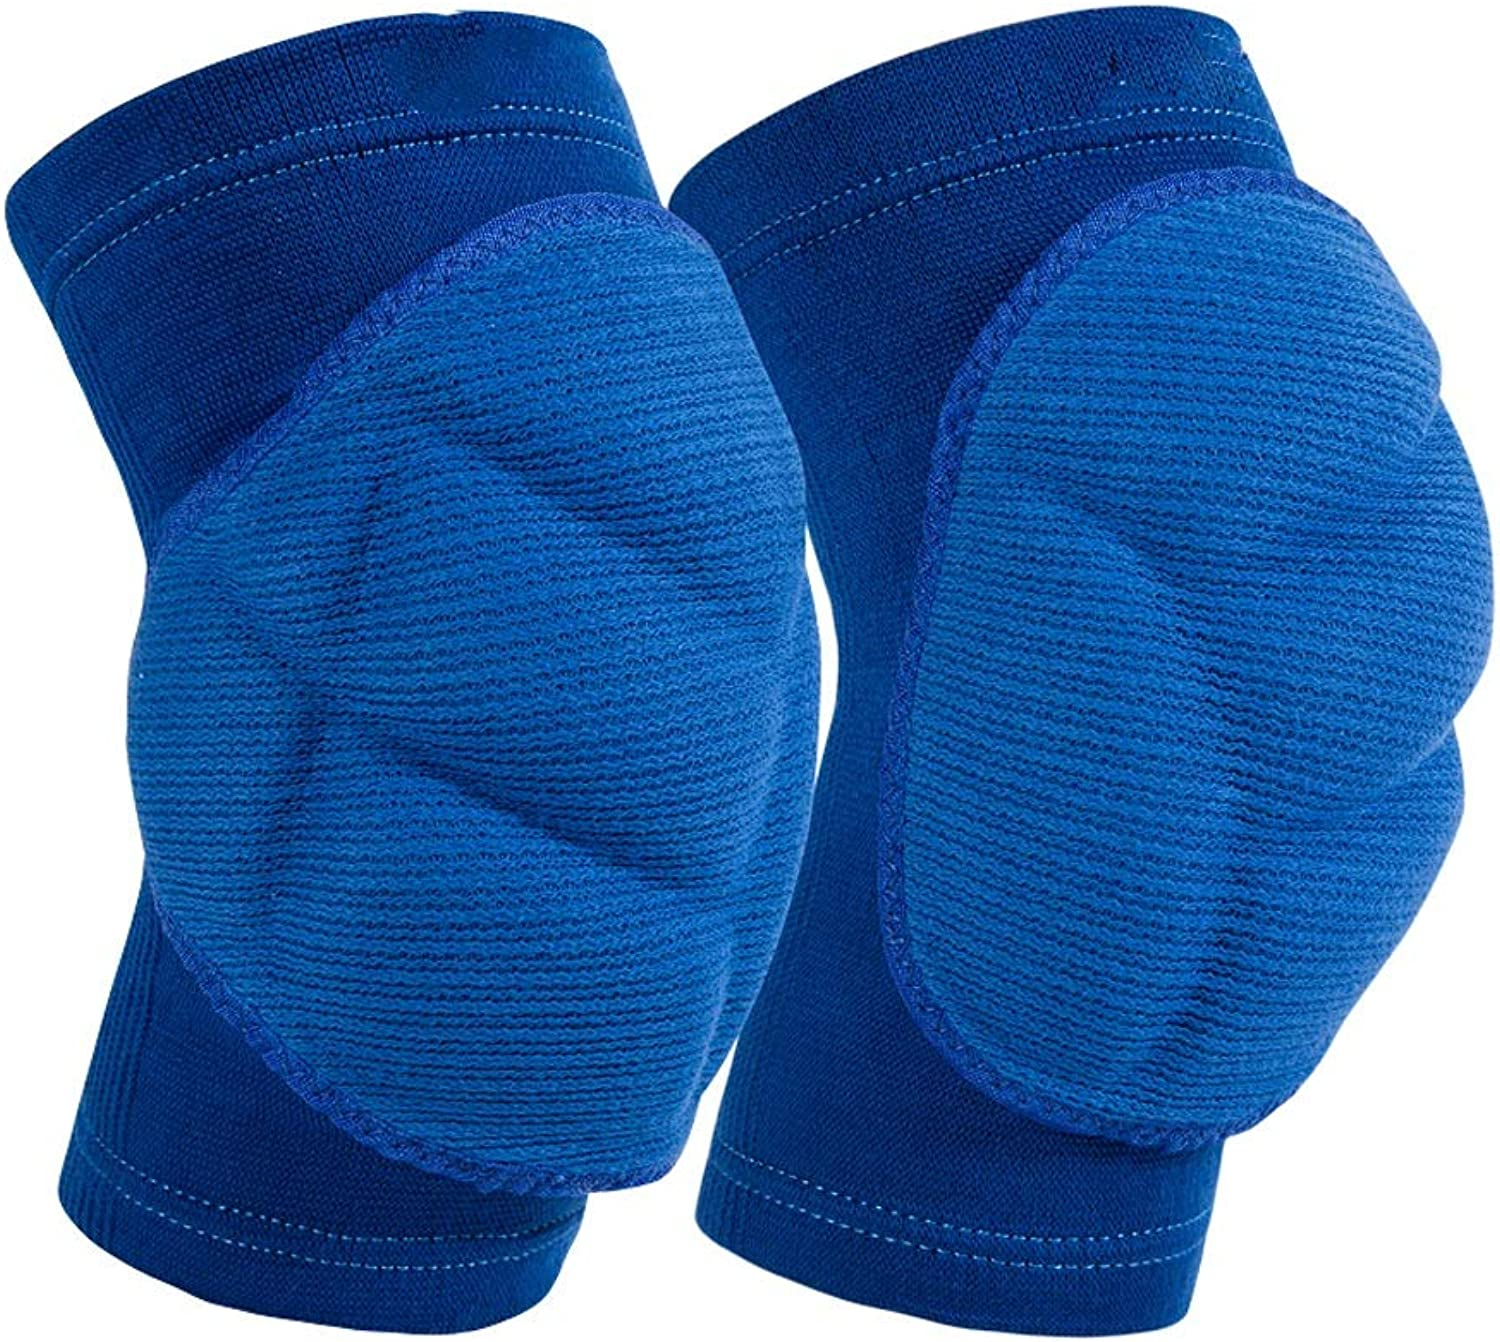 LBYMYB Anti-Collision Thickening Volleyball Goalkeeper Dance Street Dance Skating Climbing Sponge Knee Pads Kneepad (color   bluee, Size   XL)